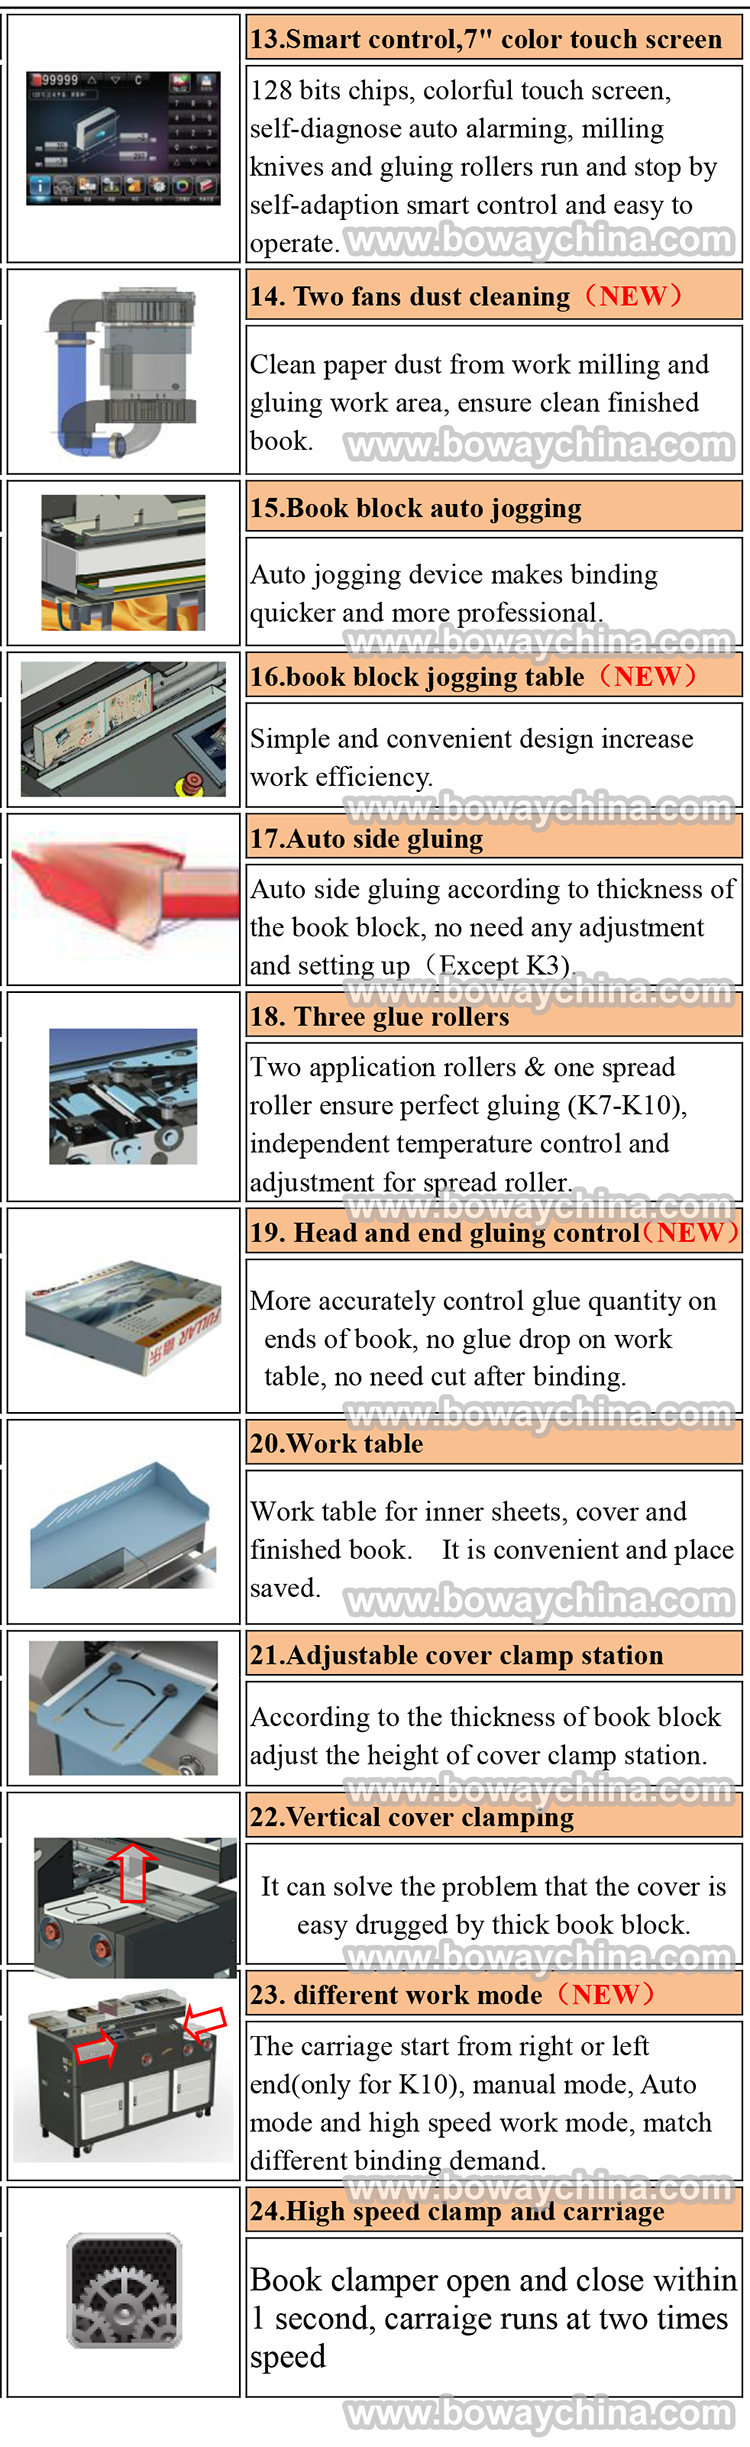 BOWAY K8   Shop School GOV 440mm Length 60mm Thick Hot Melt Adhesive Gule Perfect Tender Book Booklet Binder